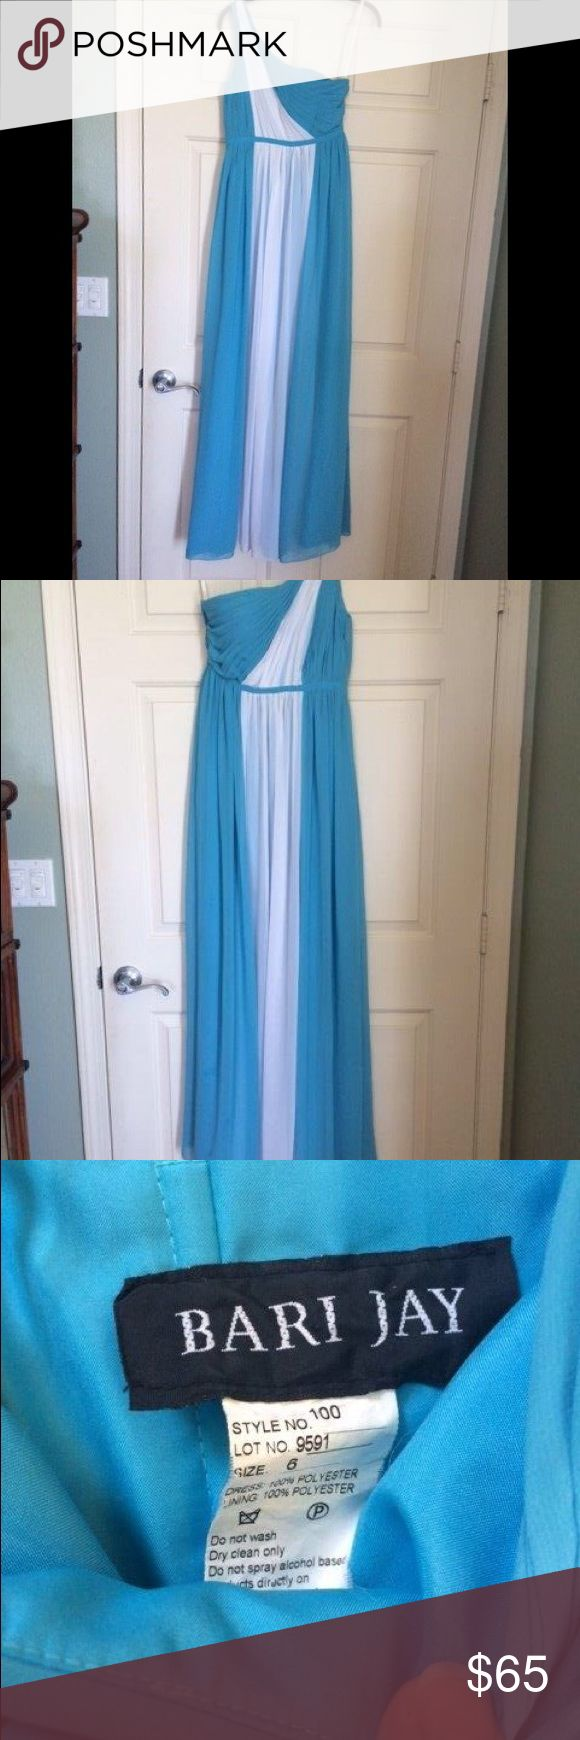 Blue and White One Shoulder Formal Dress For Sale is a beautiful, vintage, blue and white chiffon, one-shouldered long dress. It is reminiscent of what a Grecian Goddess would wear. It does run just a bit small. Bari Jay Dresses One Shoulder